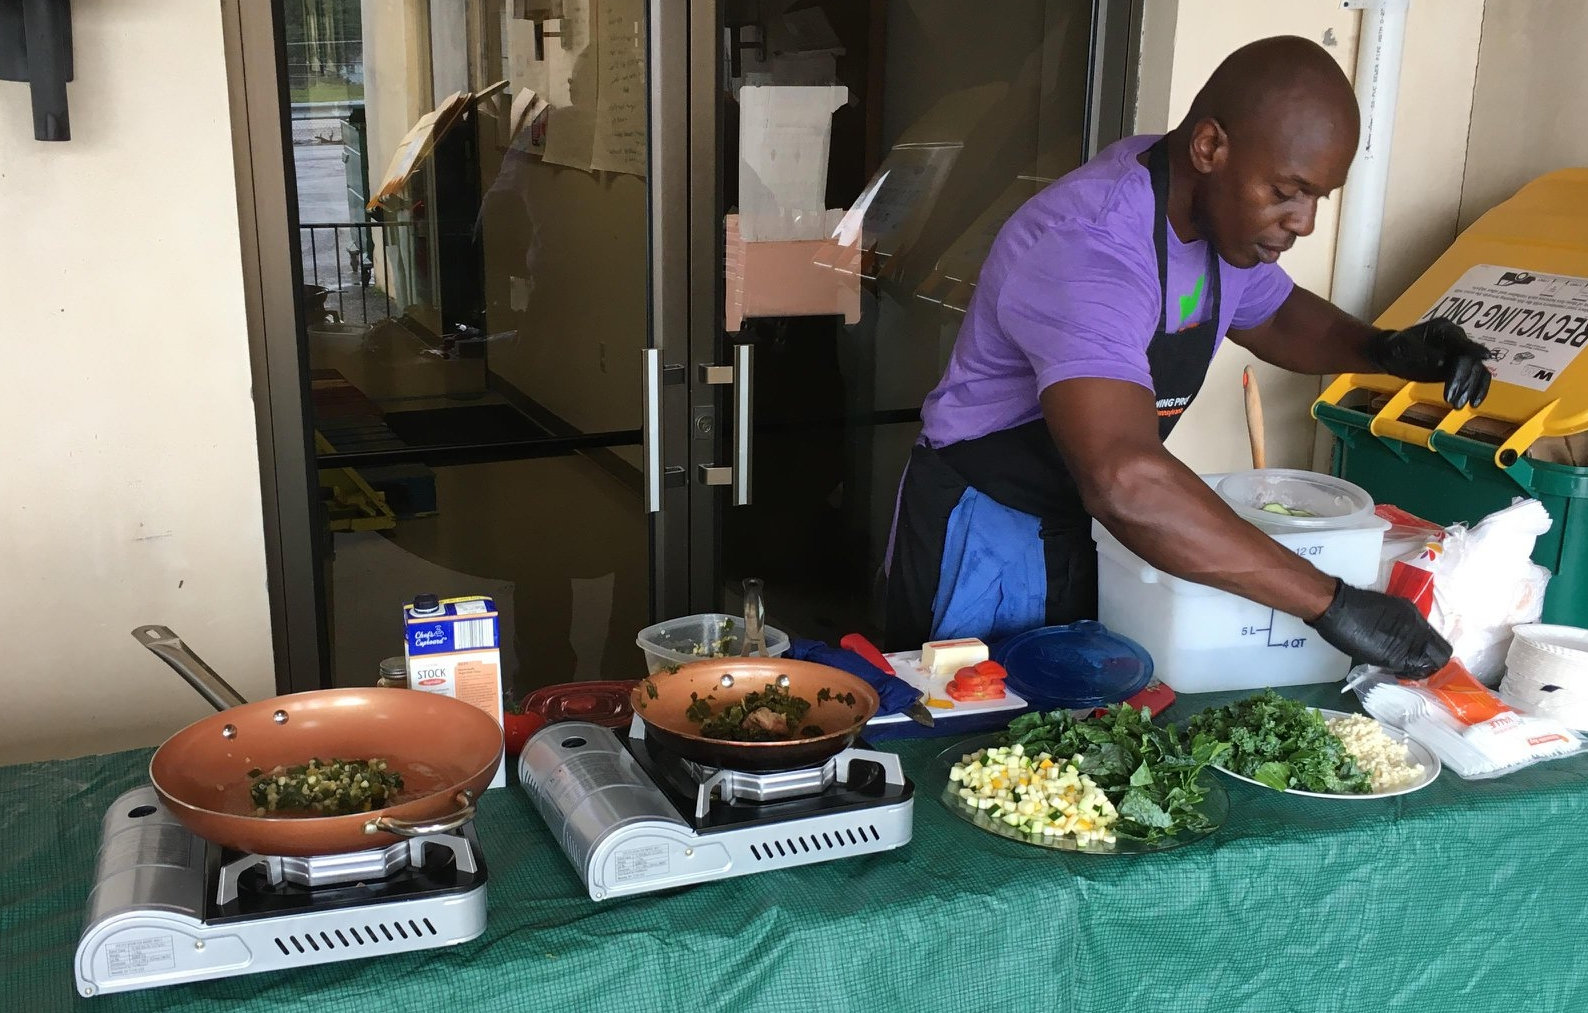 Volunteer Marvin cooks up a delicious sample at the Franklin Co. Produce Stand featuring fresh kale and collard greens!